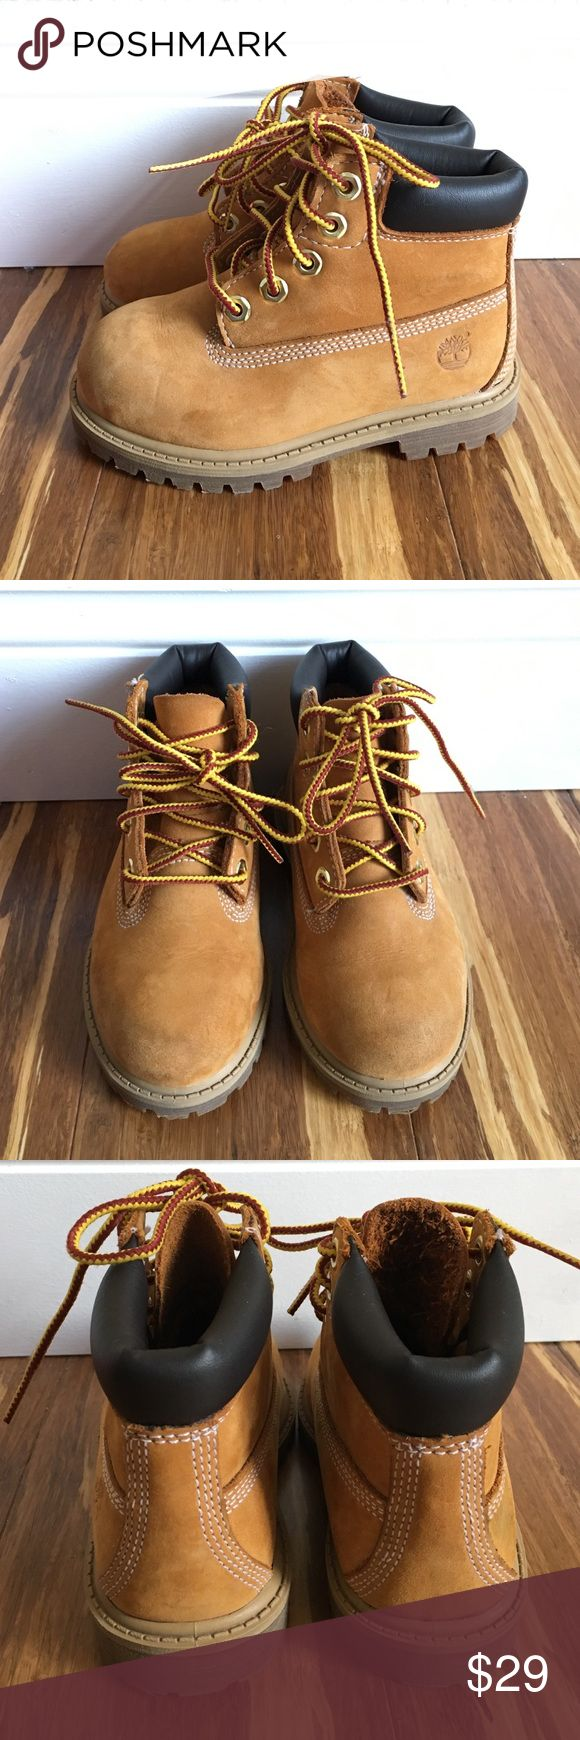 Toddler Timberland Wheat Classic Boots Preloved TIMBERLAND Classic boots in wheat. Genuine leather, Toddler size 8. Shows minor signs of wear at toe (see photos); haven't tried to clean them. Soles are in very good and clean condition. Tons of life left. Timberland Shoes Boots